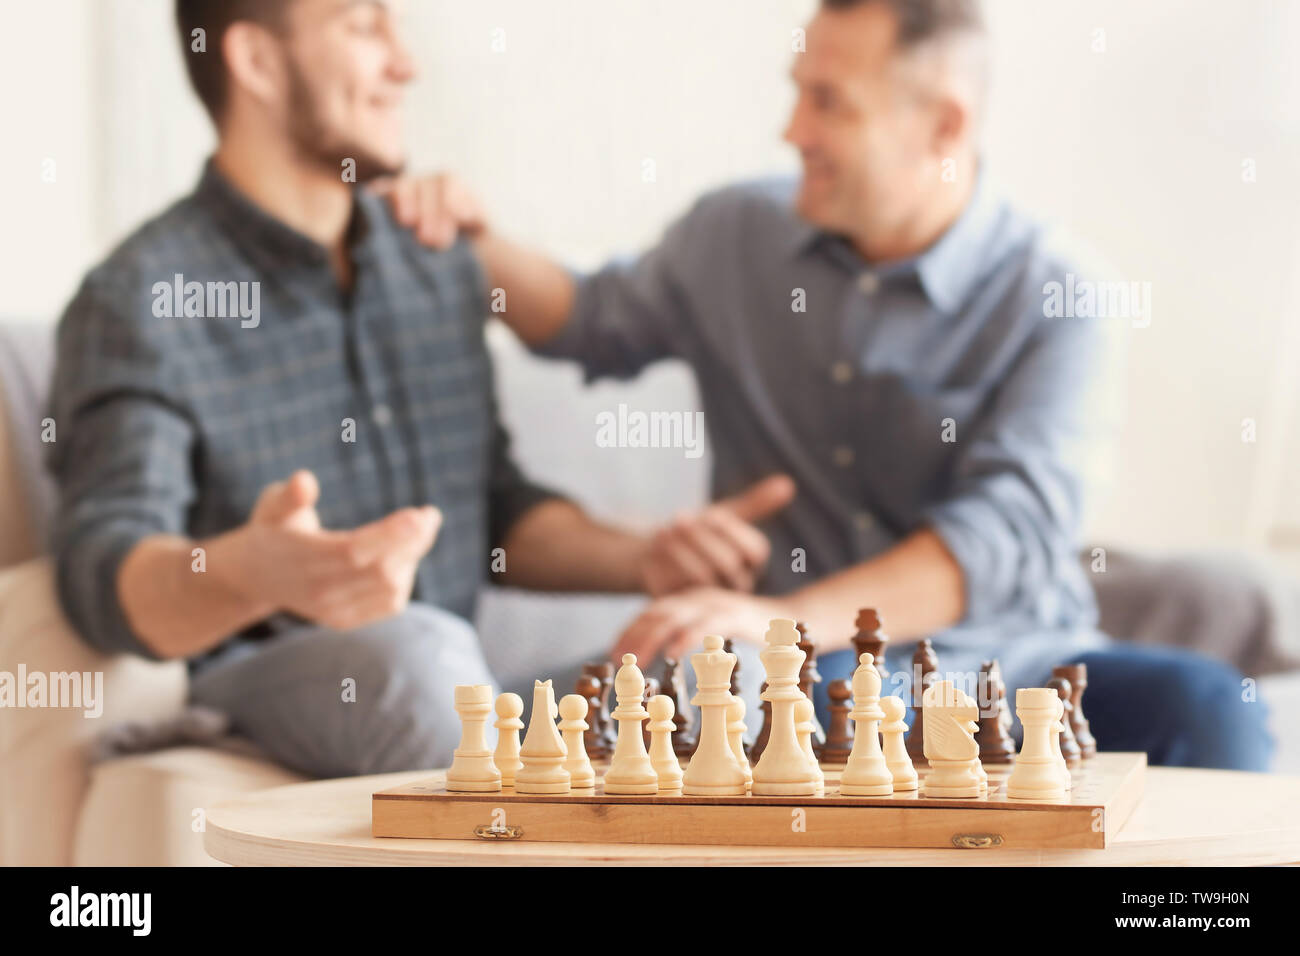 Chess board and blurred men on background. Dad and son spending time together - Stock Image